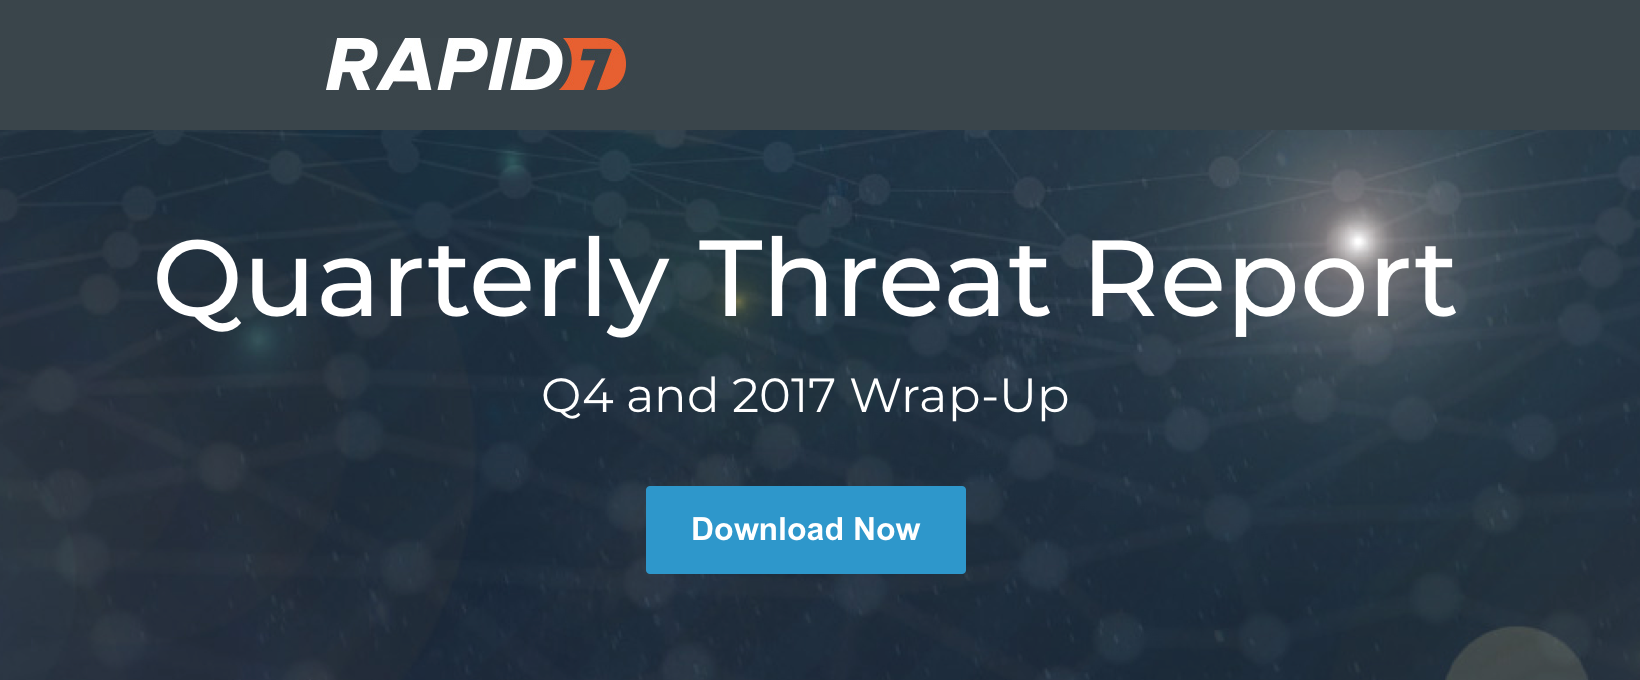 AnkaSAFE_Rapid7_Quarterly Threat Report